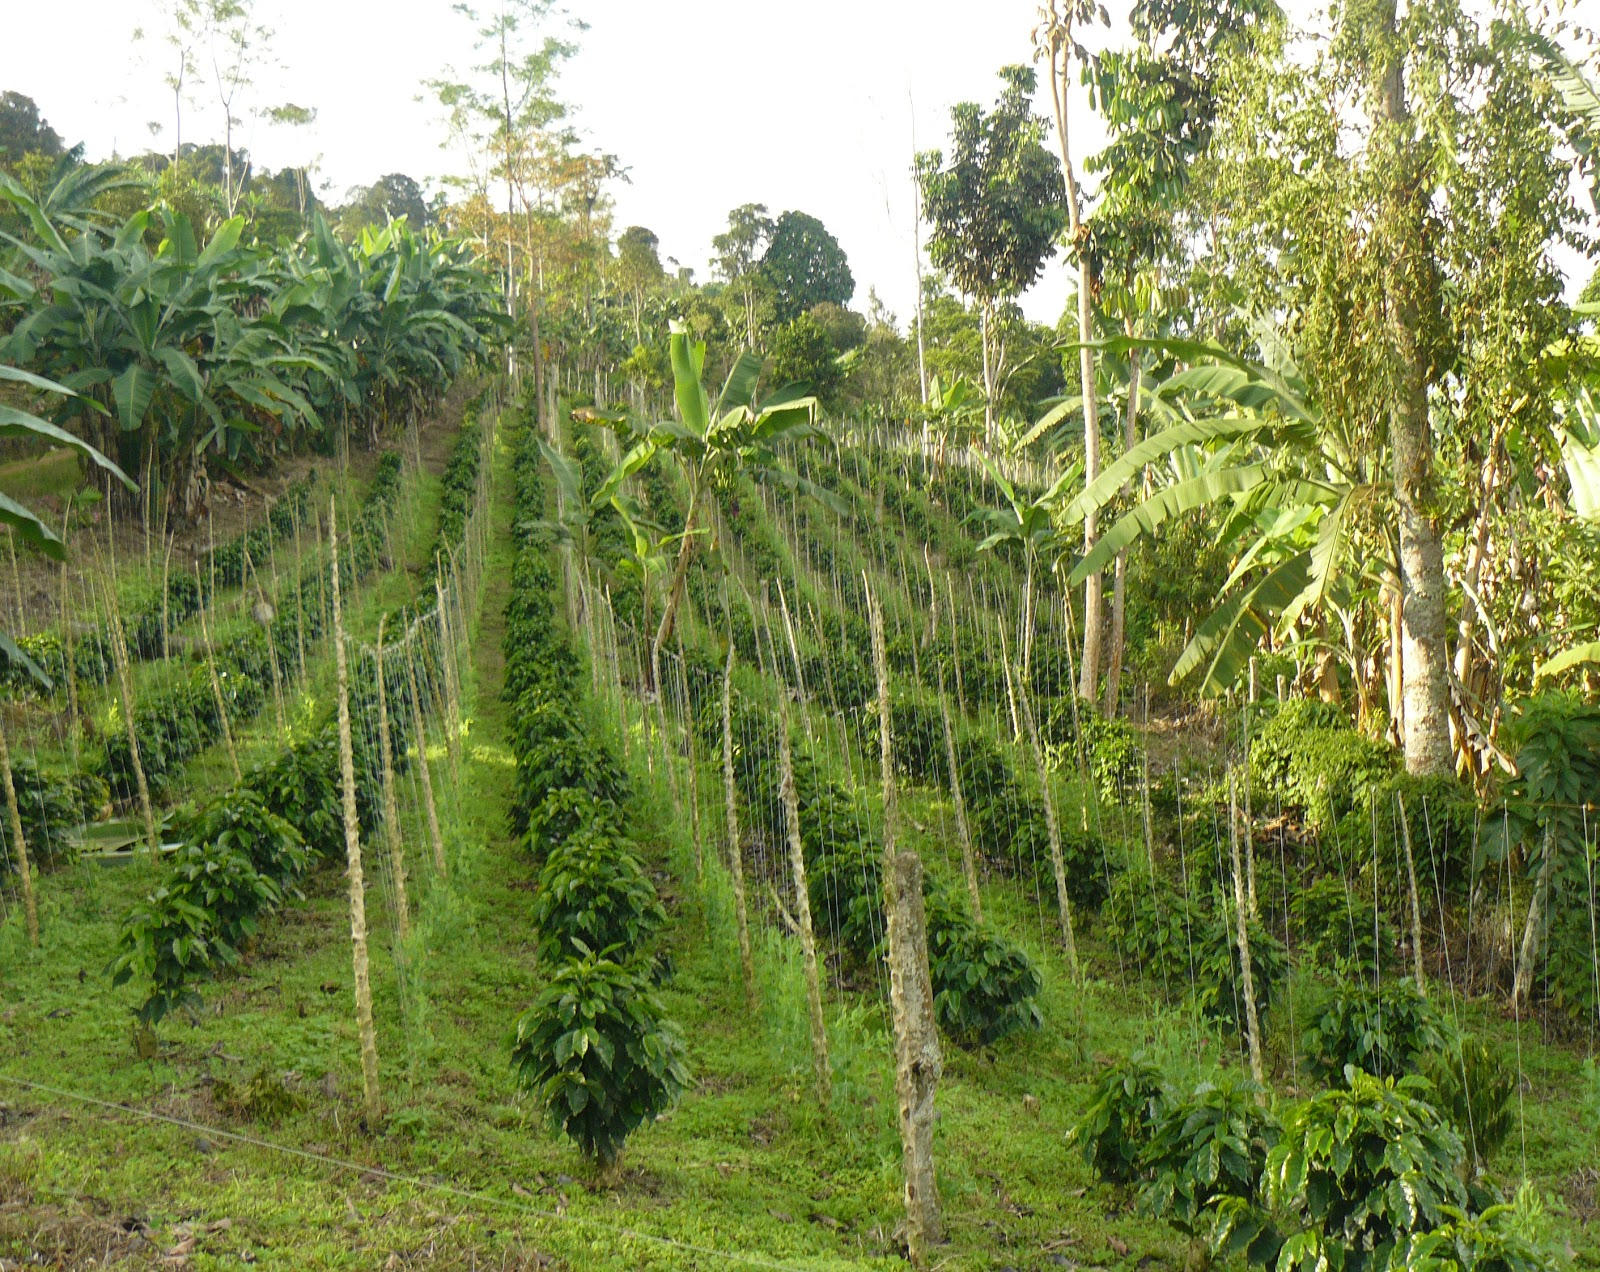 Coffee farming remains one of Colombia's top export industries.